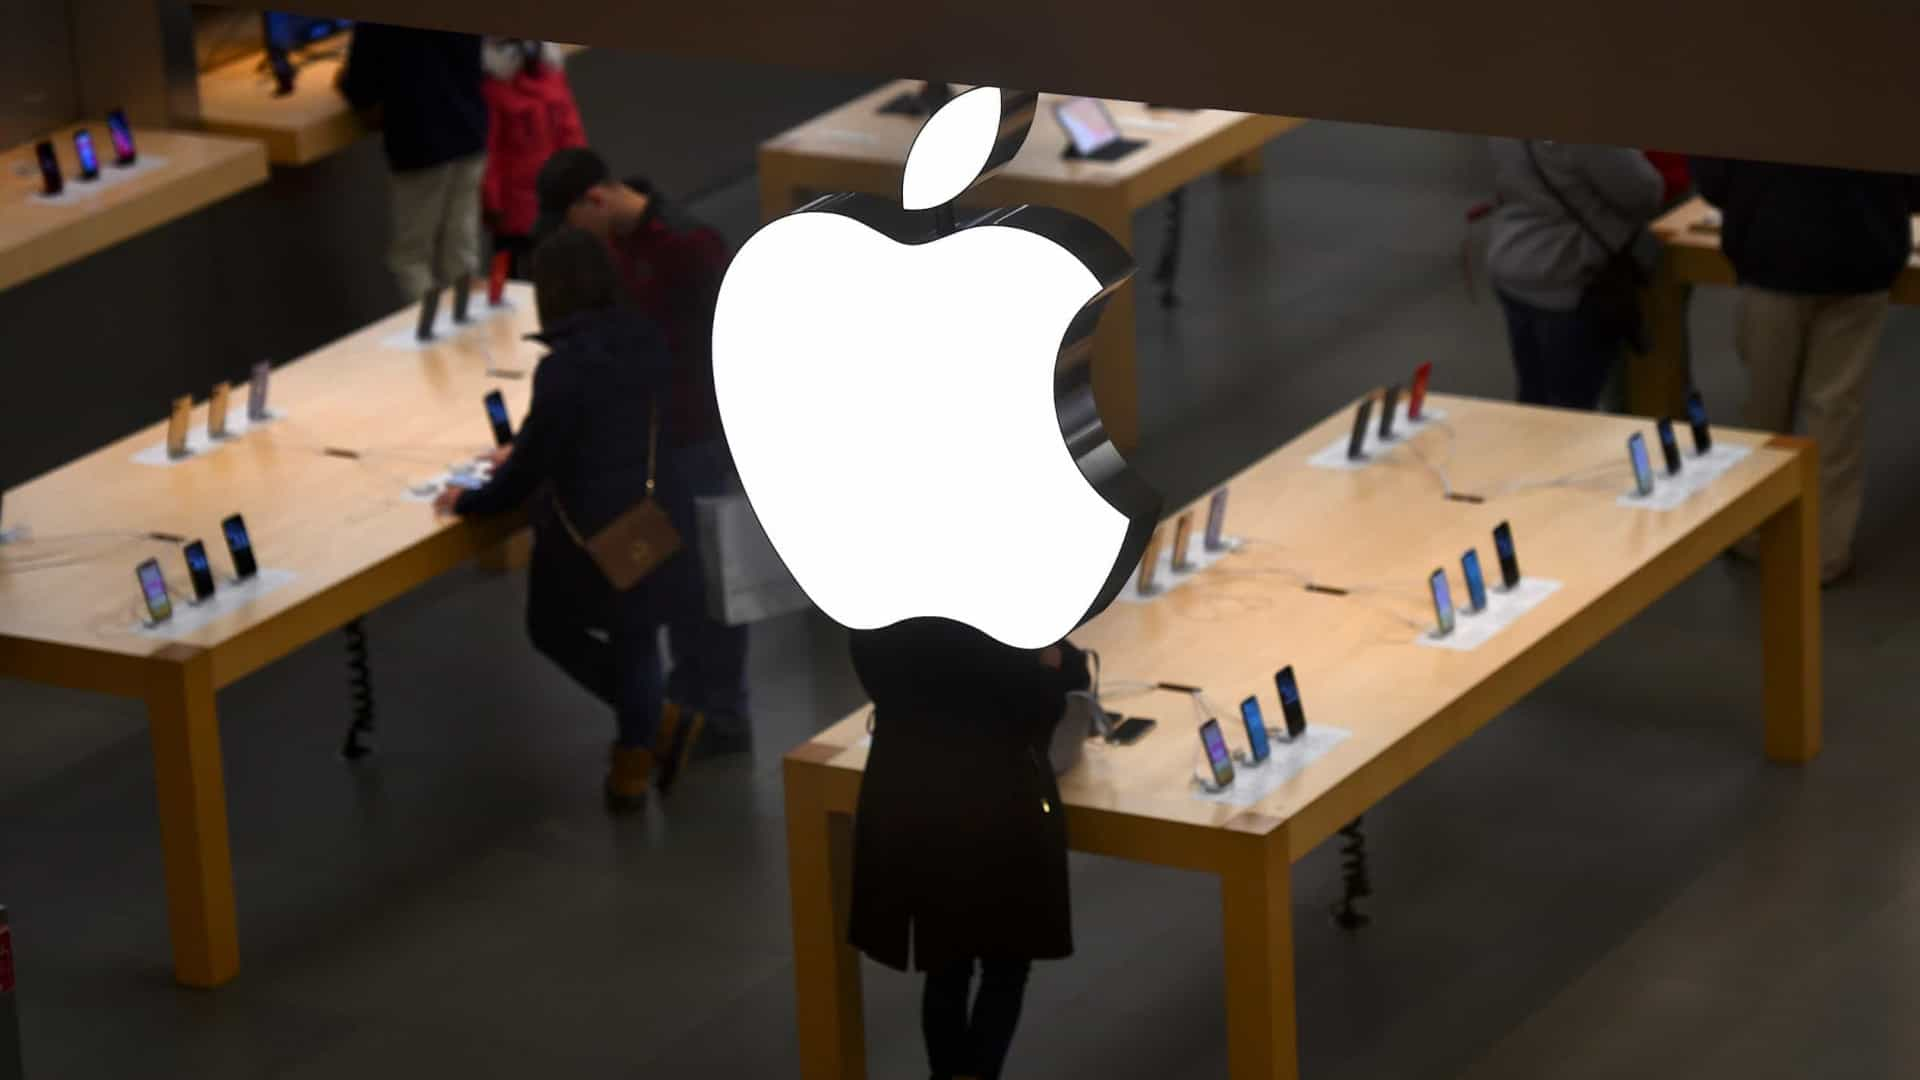 Apple fired the engineer responsible for talking about cases of harassment